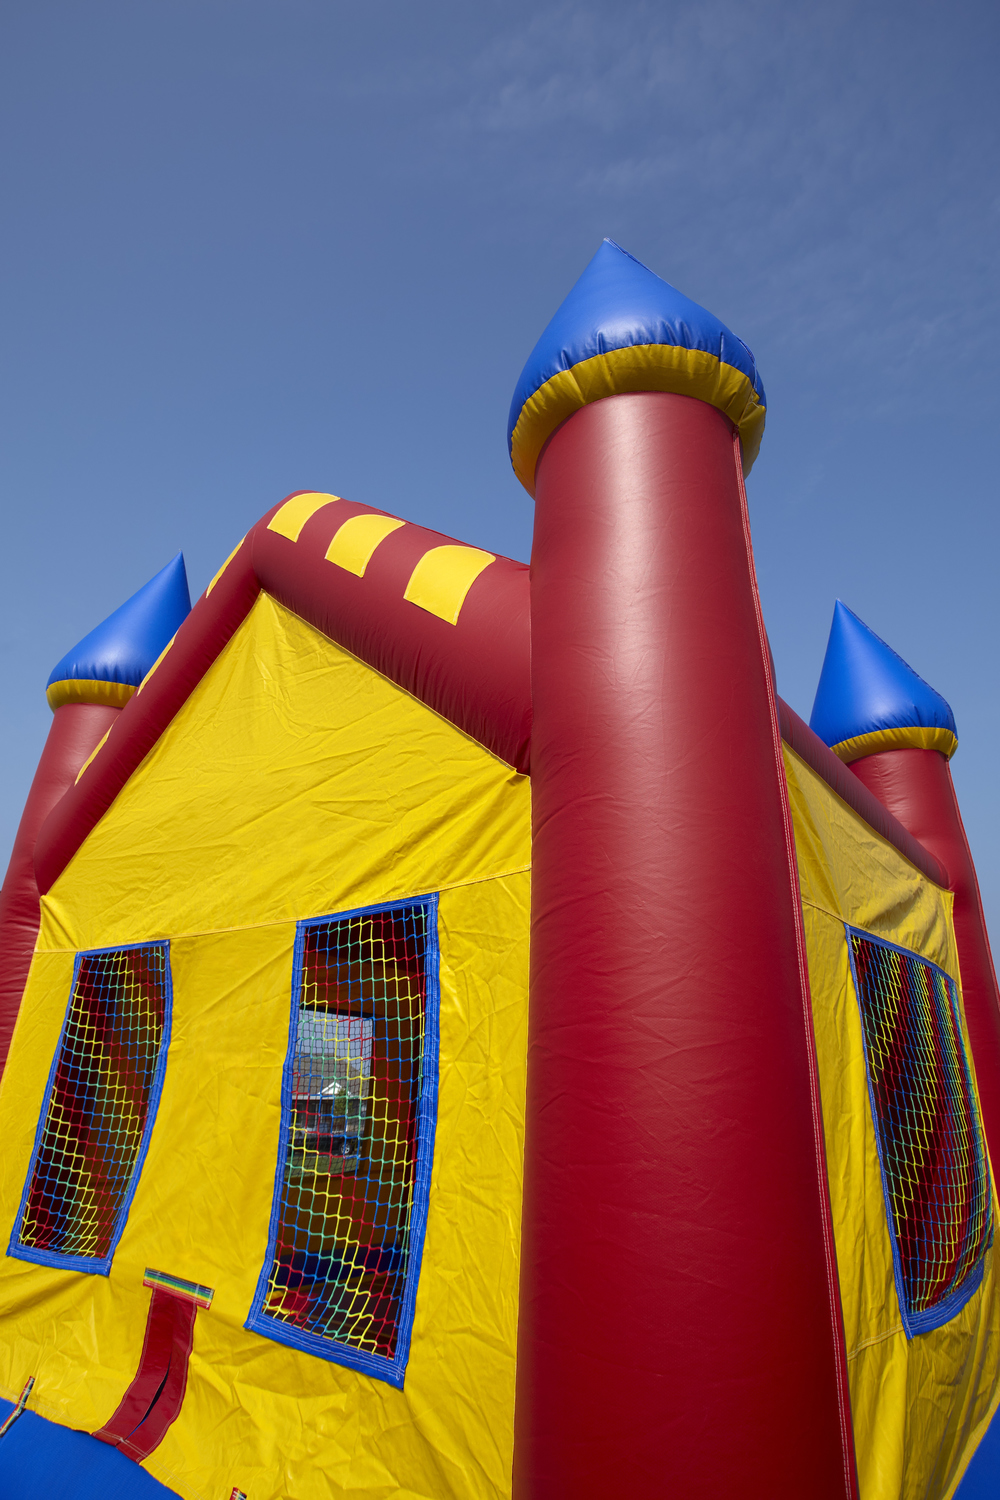 Red yellow and blue moonbounce castle rental.